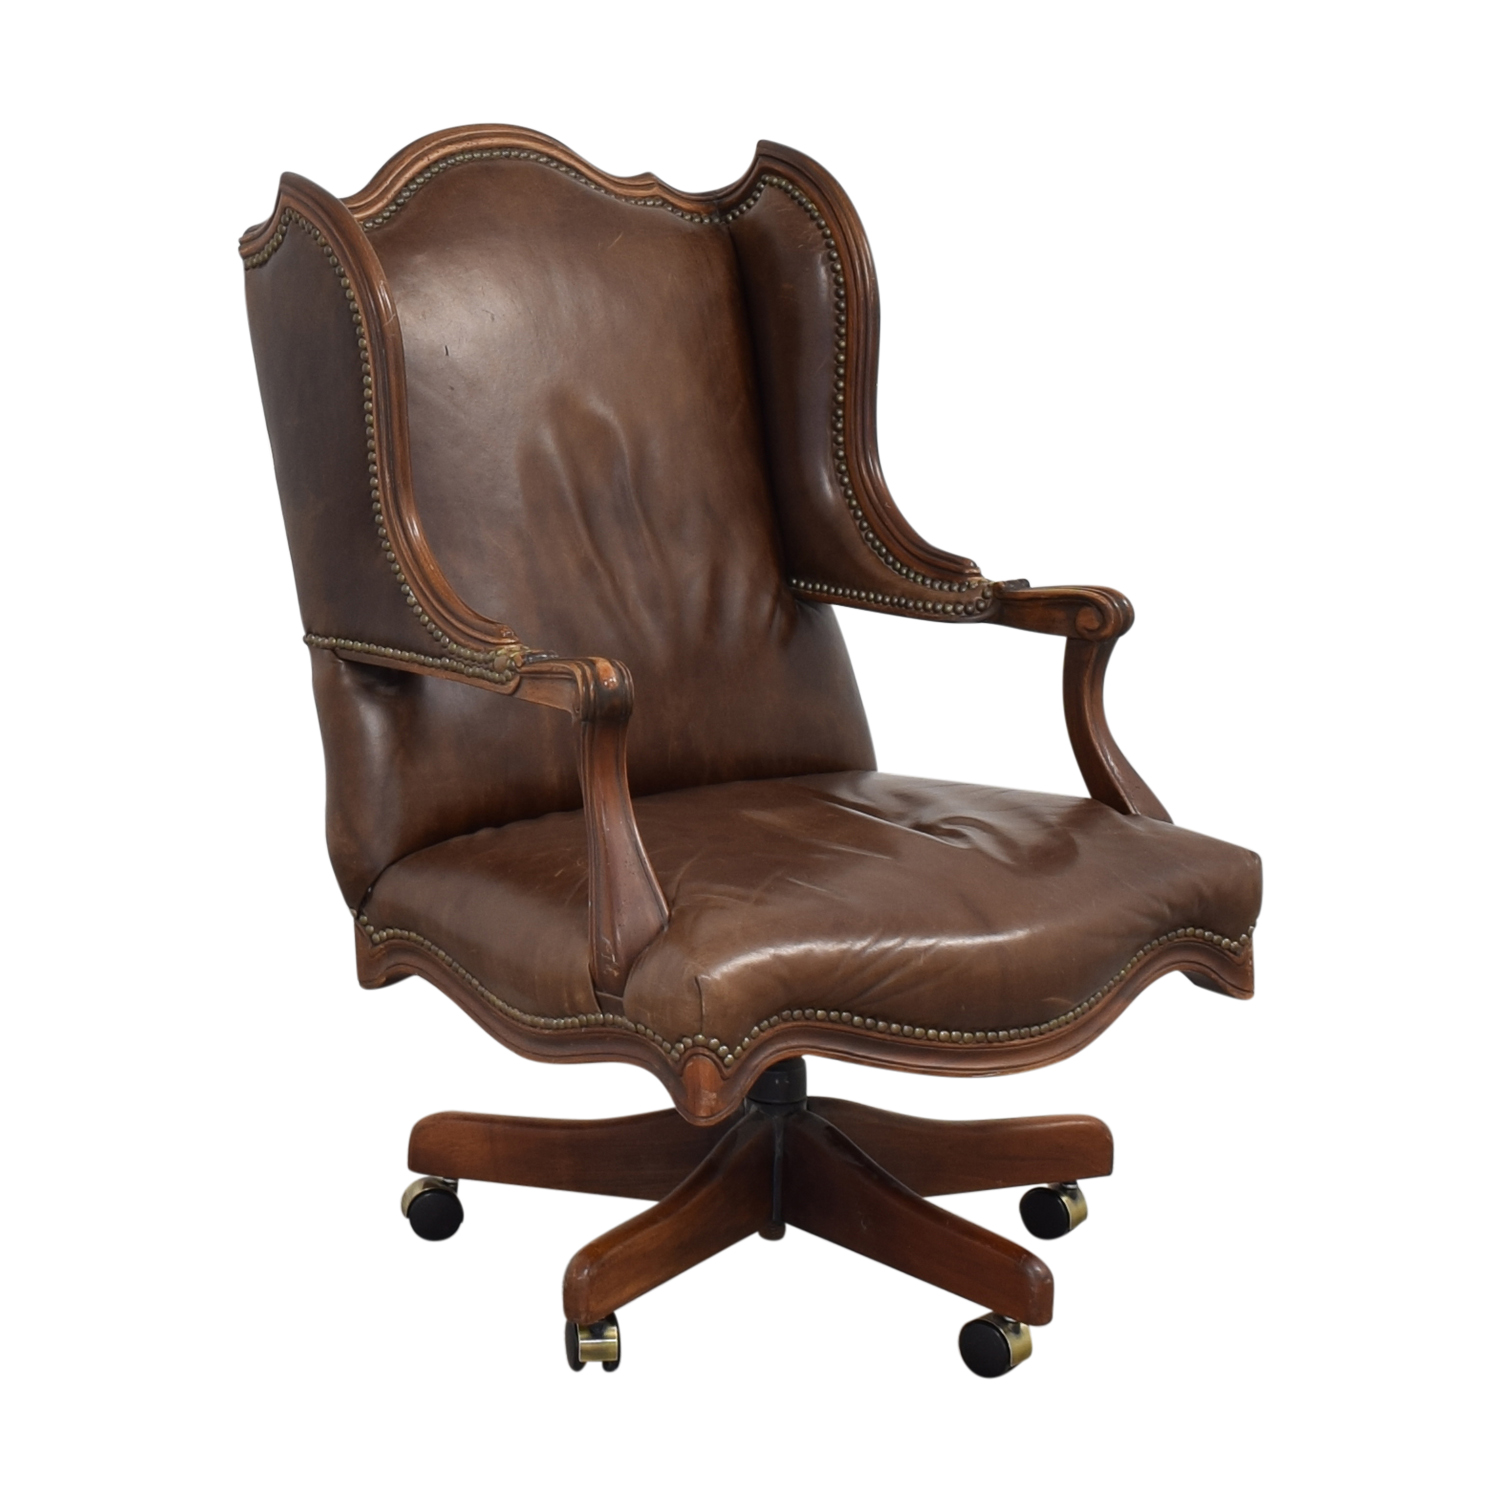 Vintage Desk Swivel Chair Chairs